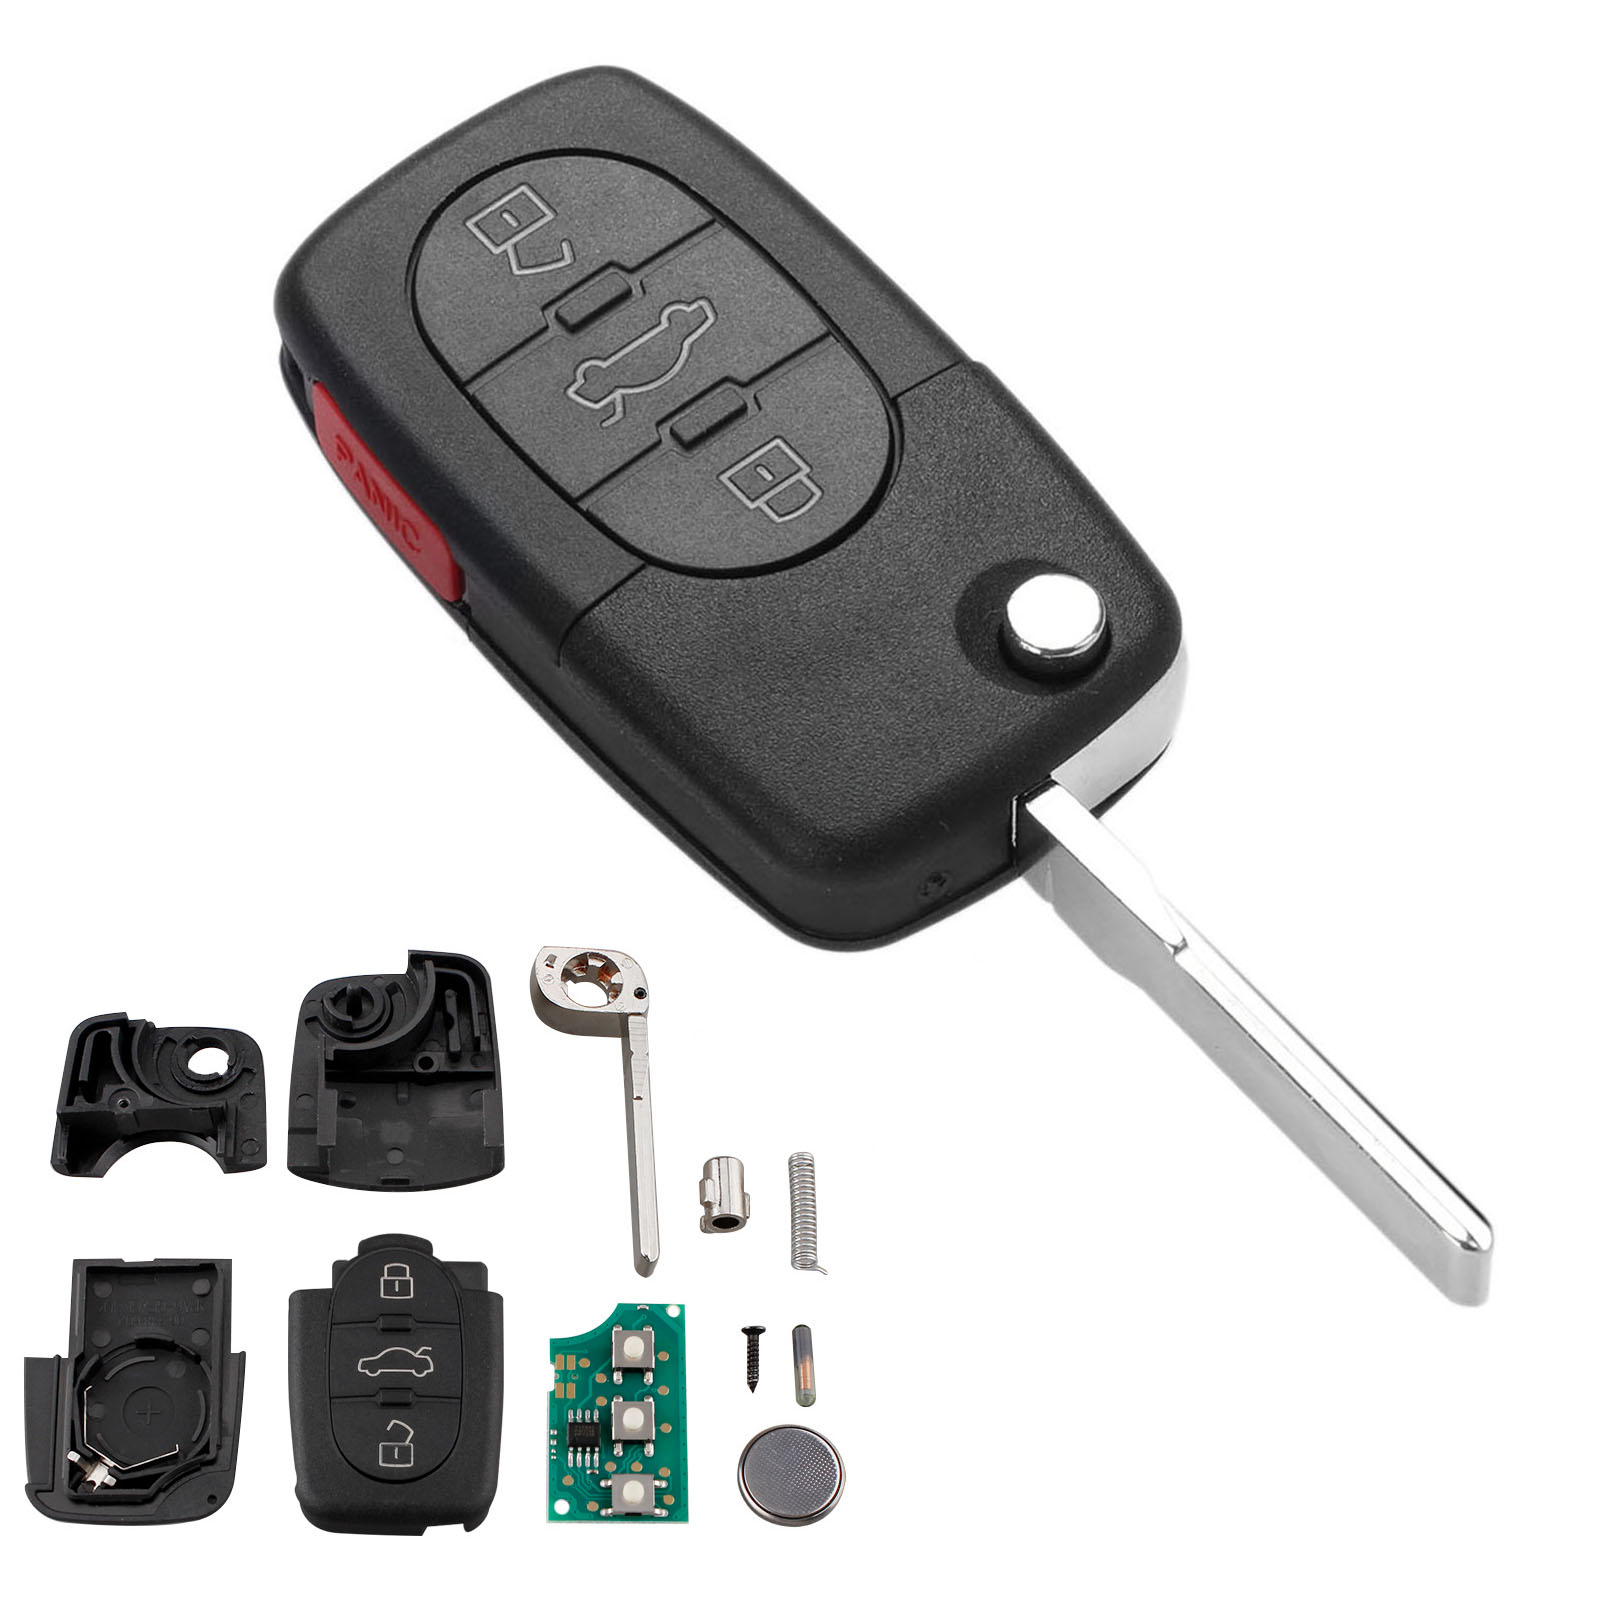 Yetaha 3+1Button 315MHz Car Remote Key For AUDI A4 S4 A6 A8 TT 1997 1998 1999 2000 2001 2002 2003 2004 2005 4D0837231E ID48 Chip